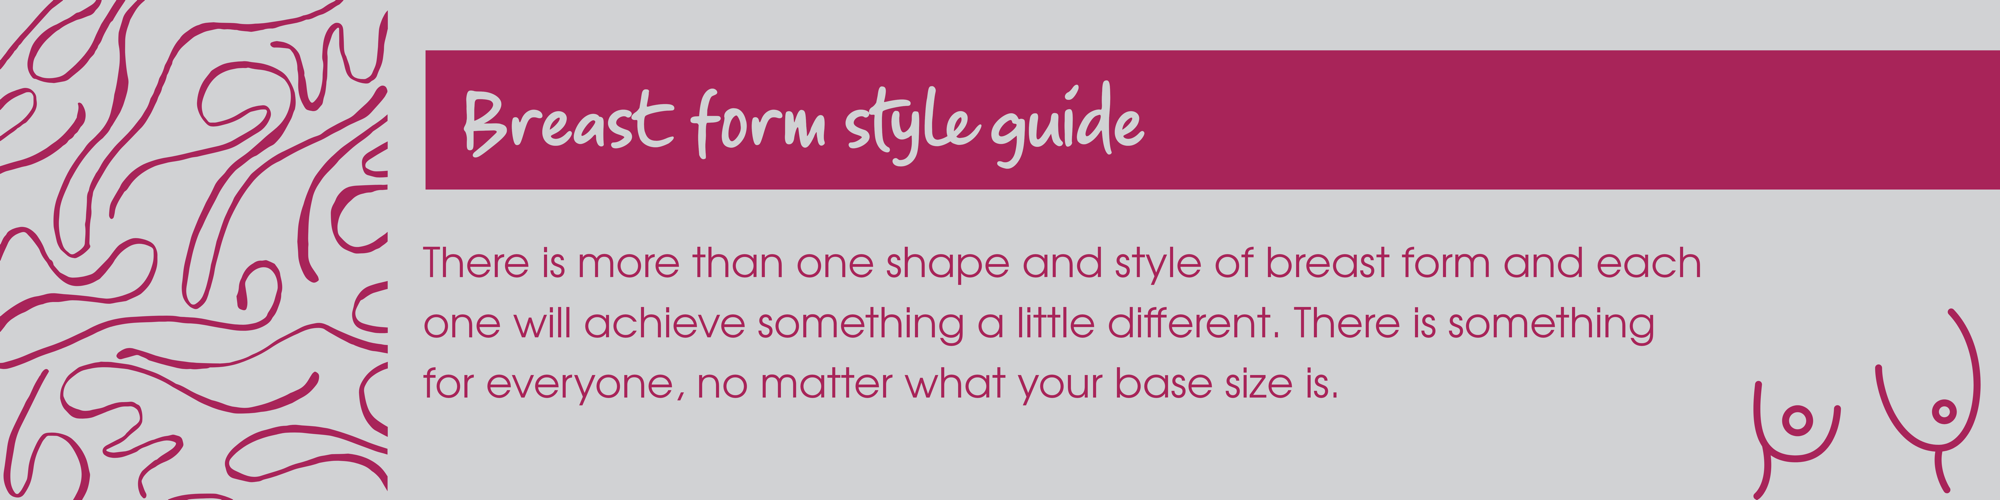 Breast form style guide